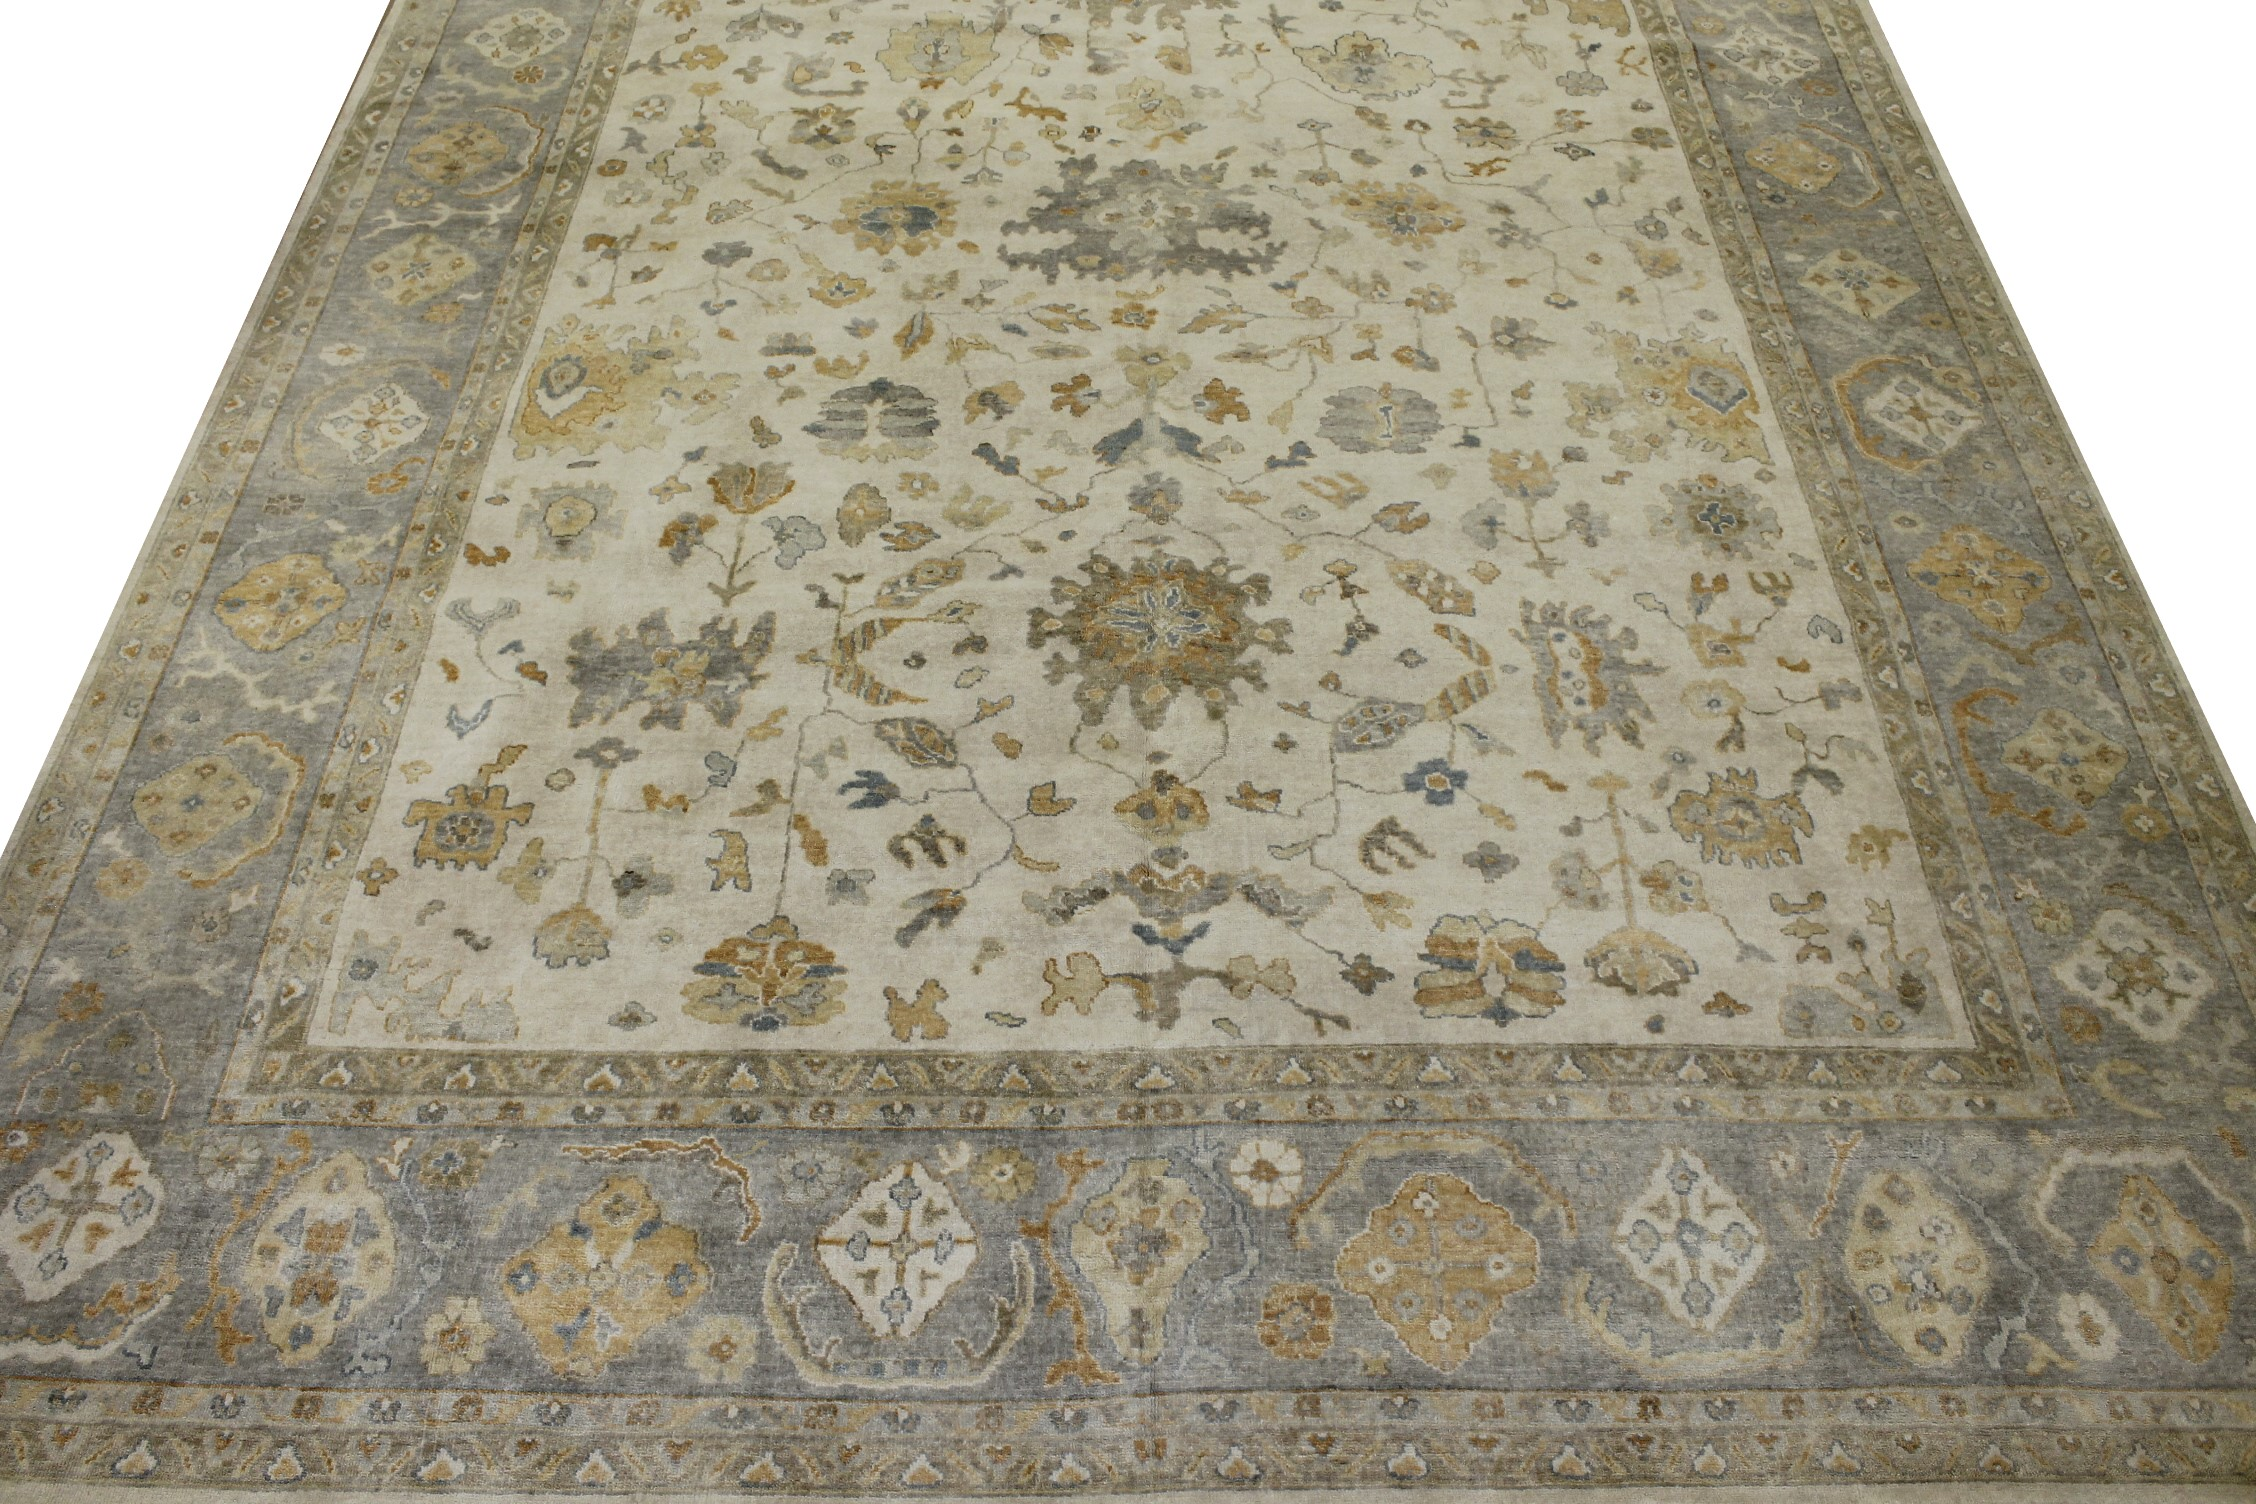 OVERSIZE Oushak Hand Knotted Wool Area Rug - MR022719